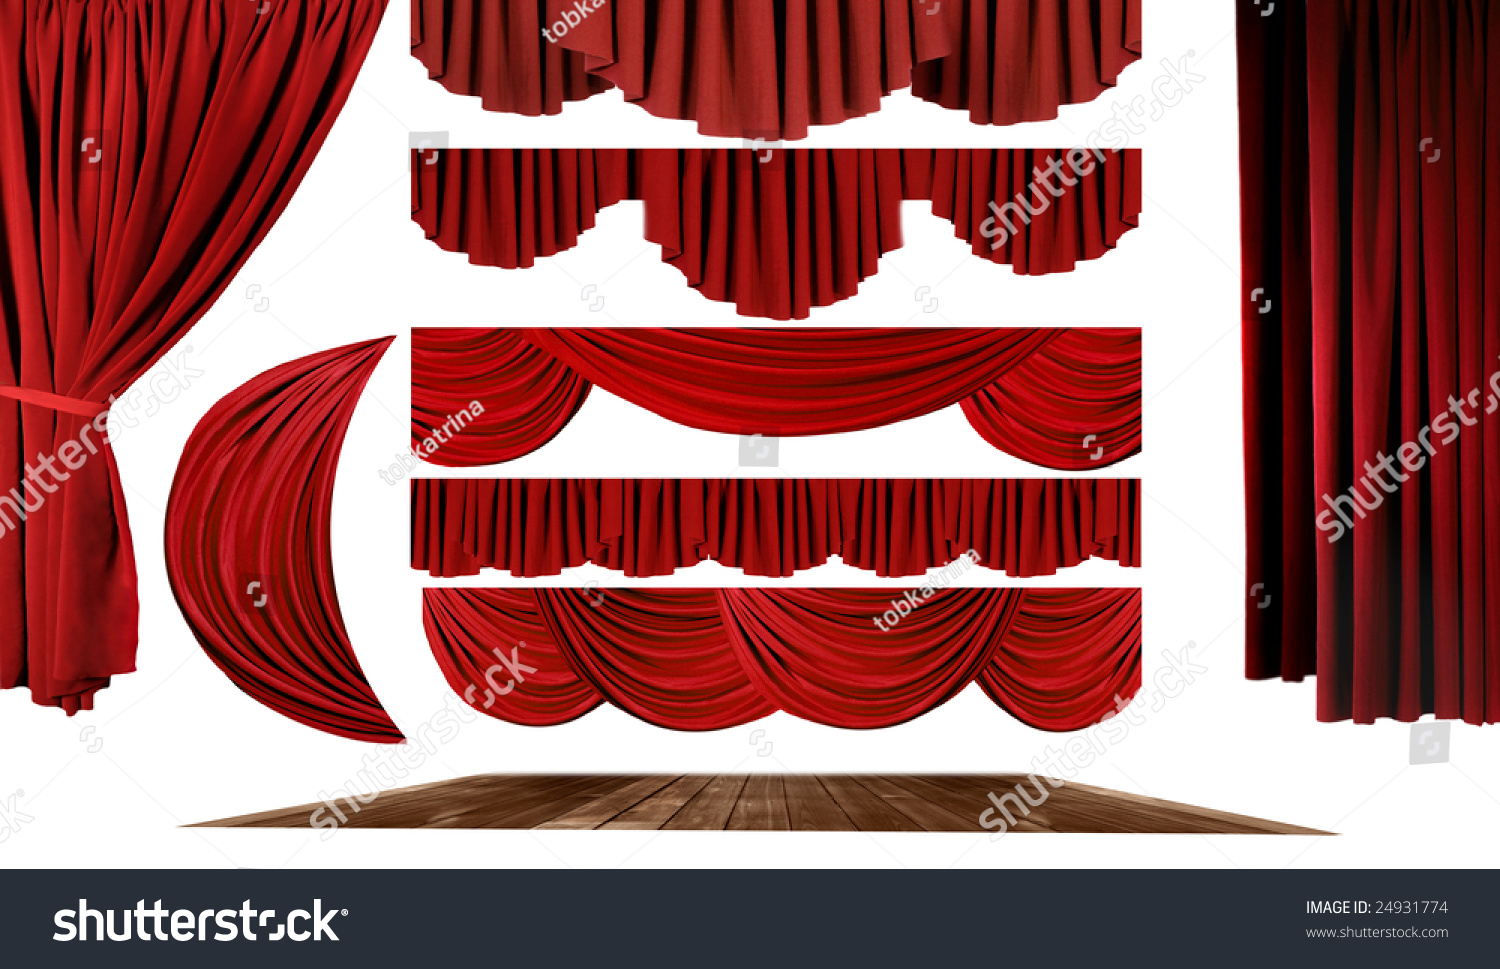 Stock photo dramatic red old fashioned elegant theater stage stock - Dramatic Red Old Fashioned Elegant Theater Stage Elements Of Swags To Make Your Own Background